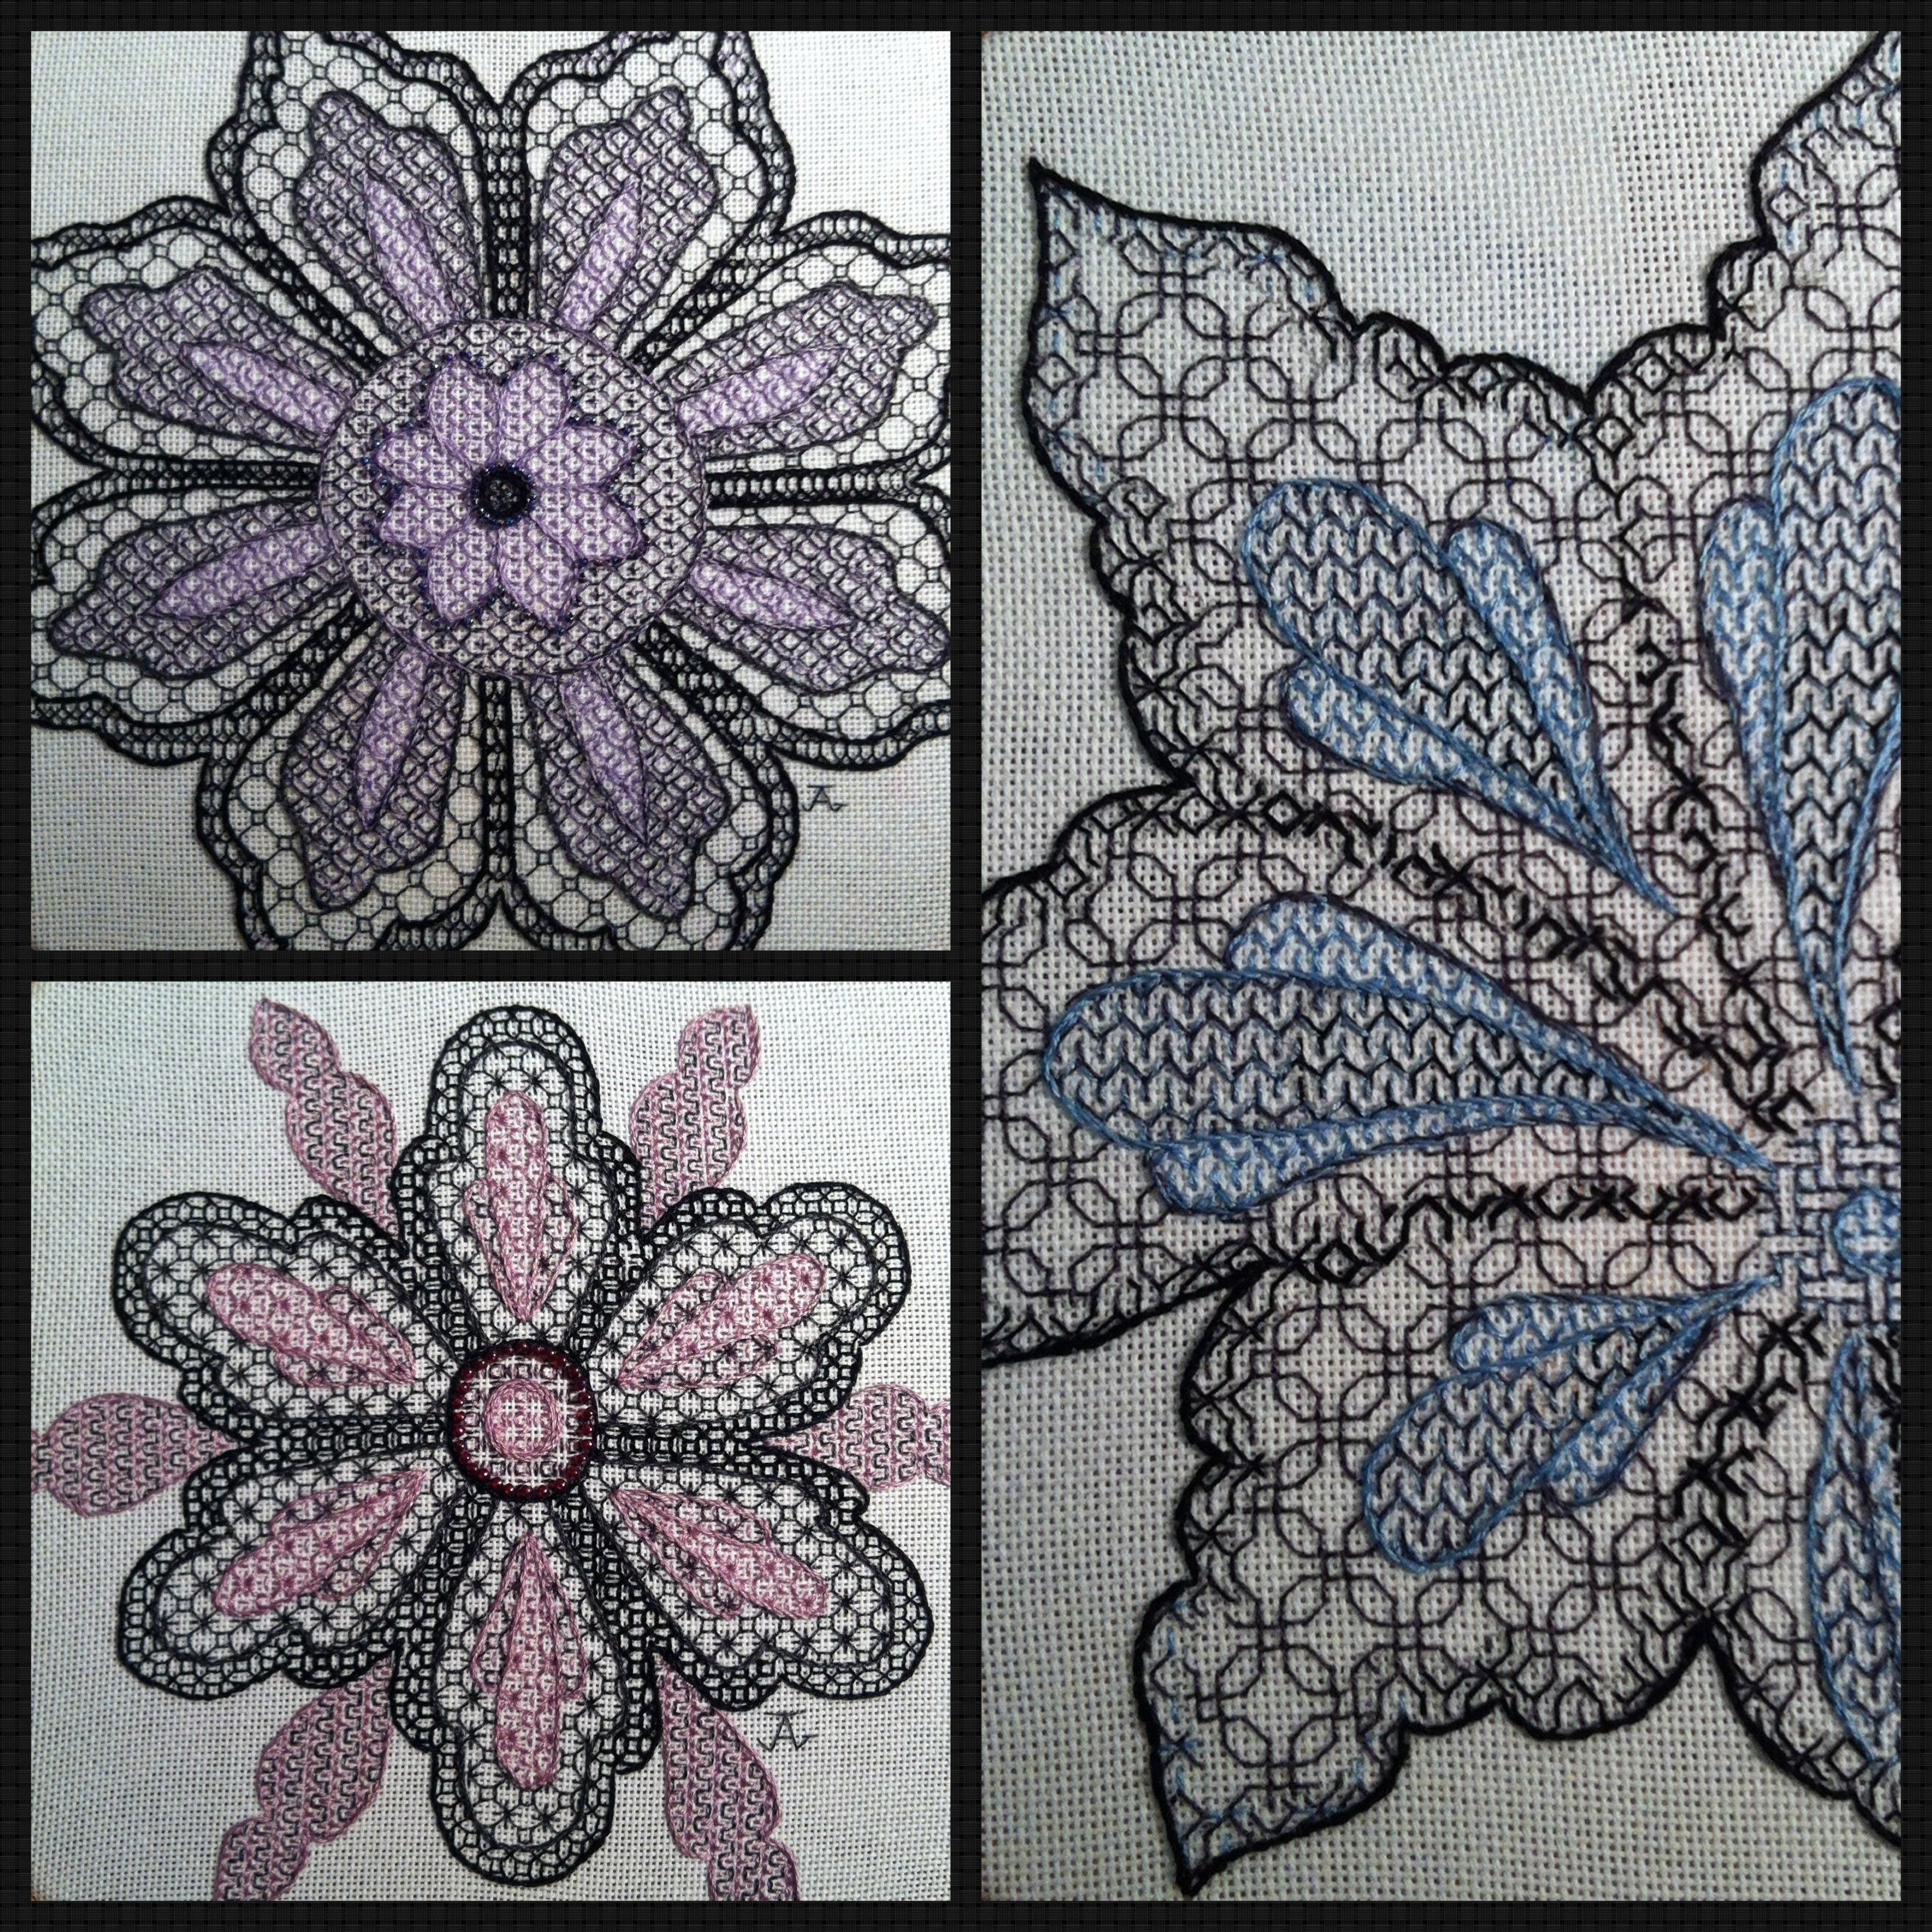 Beginners Blackwork Embroidery Kits (With Images